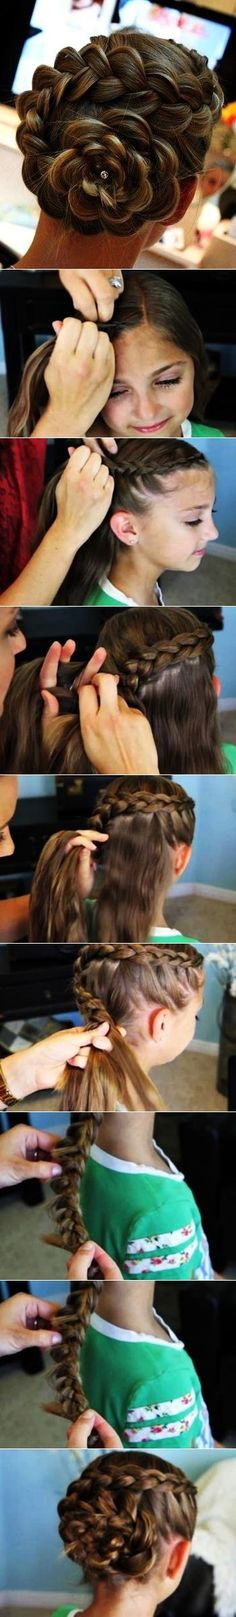 The Dutch Flower Braid. It is beautiful and looks complex, but it is remarkably simple!